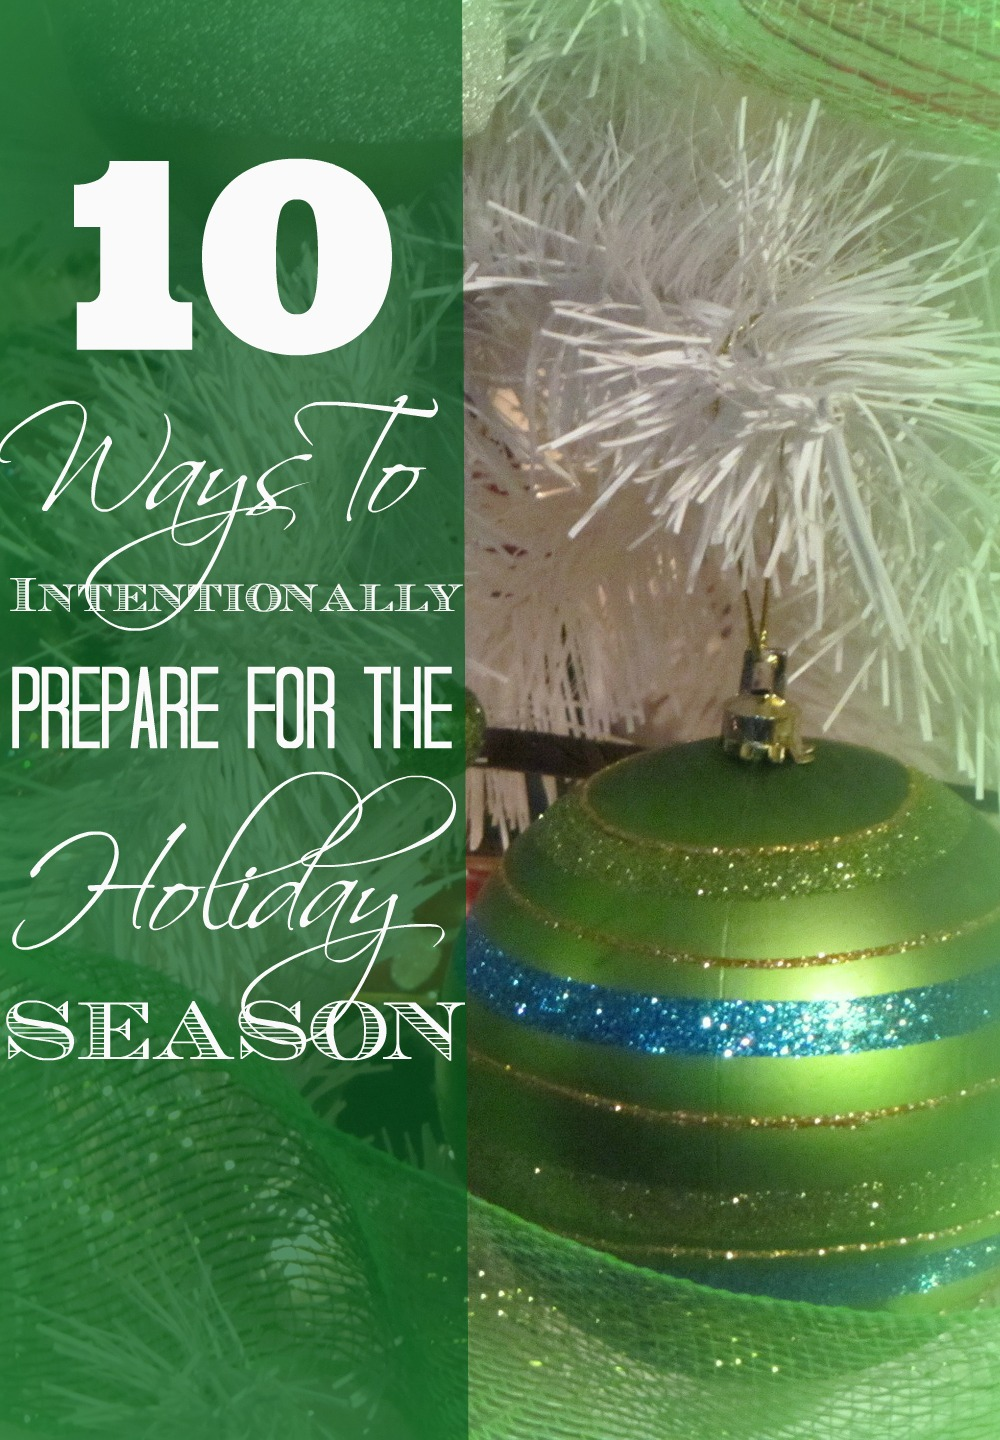 10 Ways To Intentionally Prepare For The Holiday Season